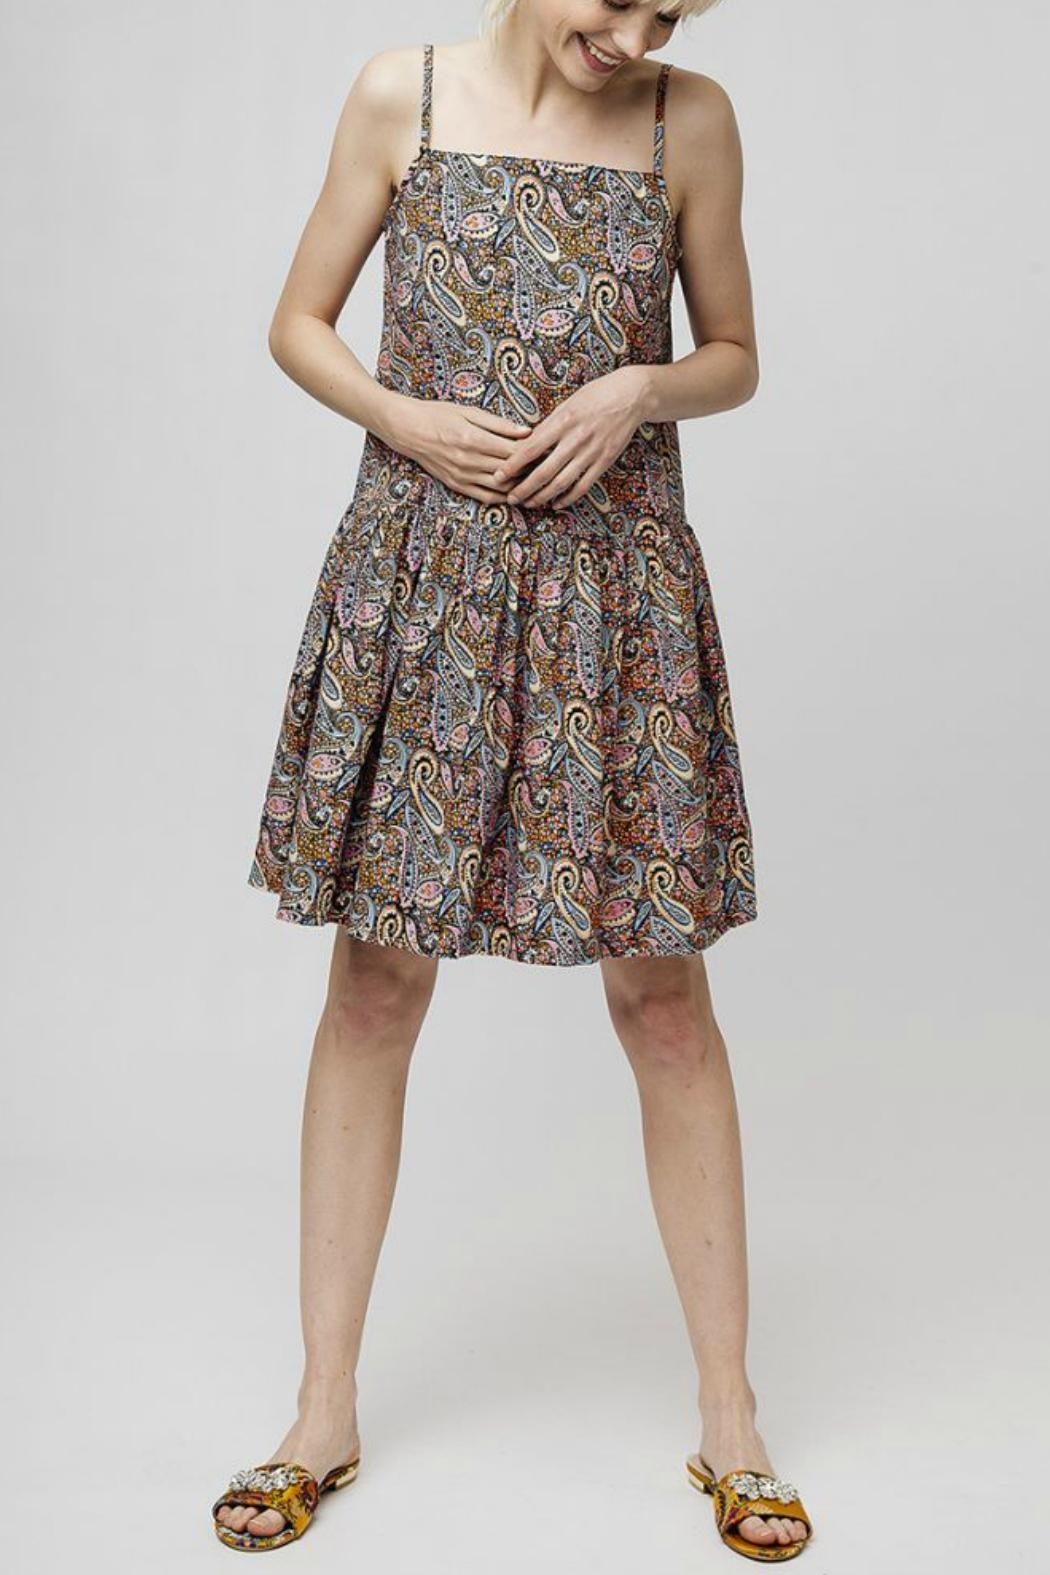 Compania Fantastica Paisley Summer Dress - Side Cropped Image